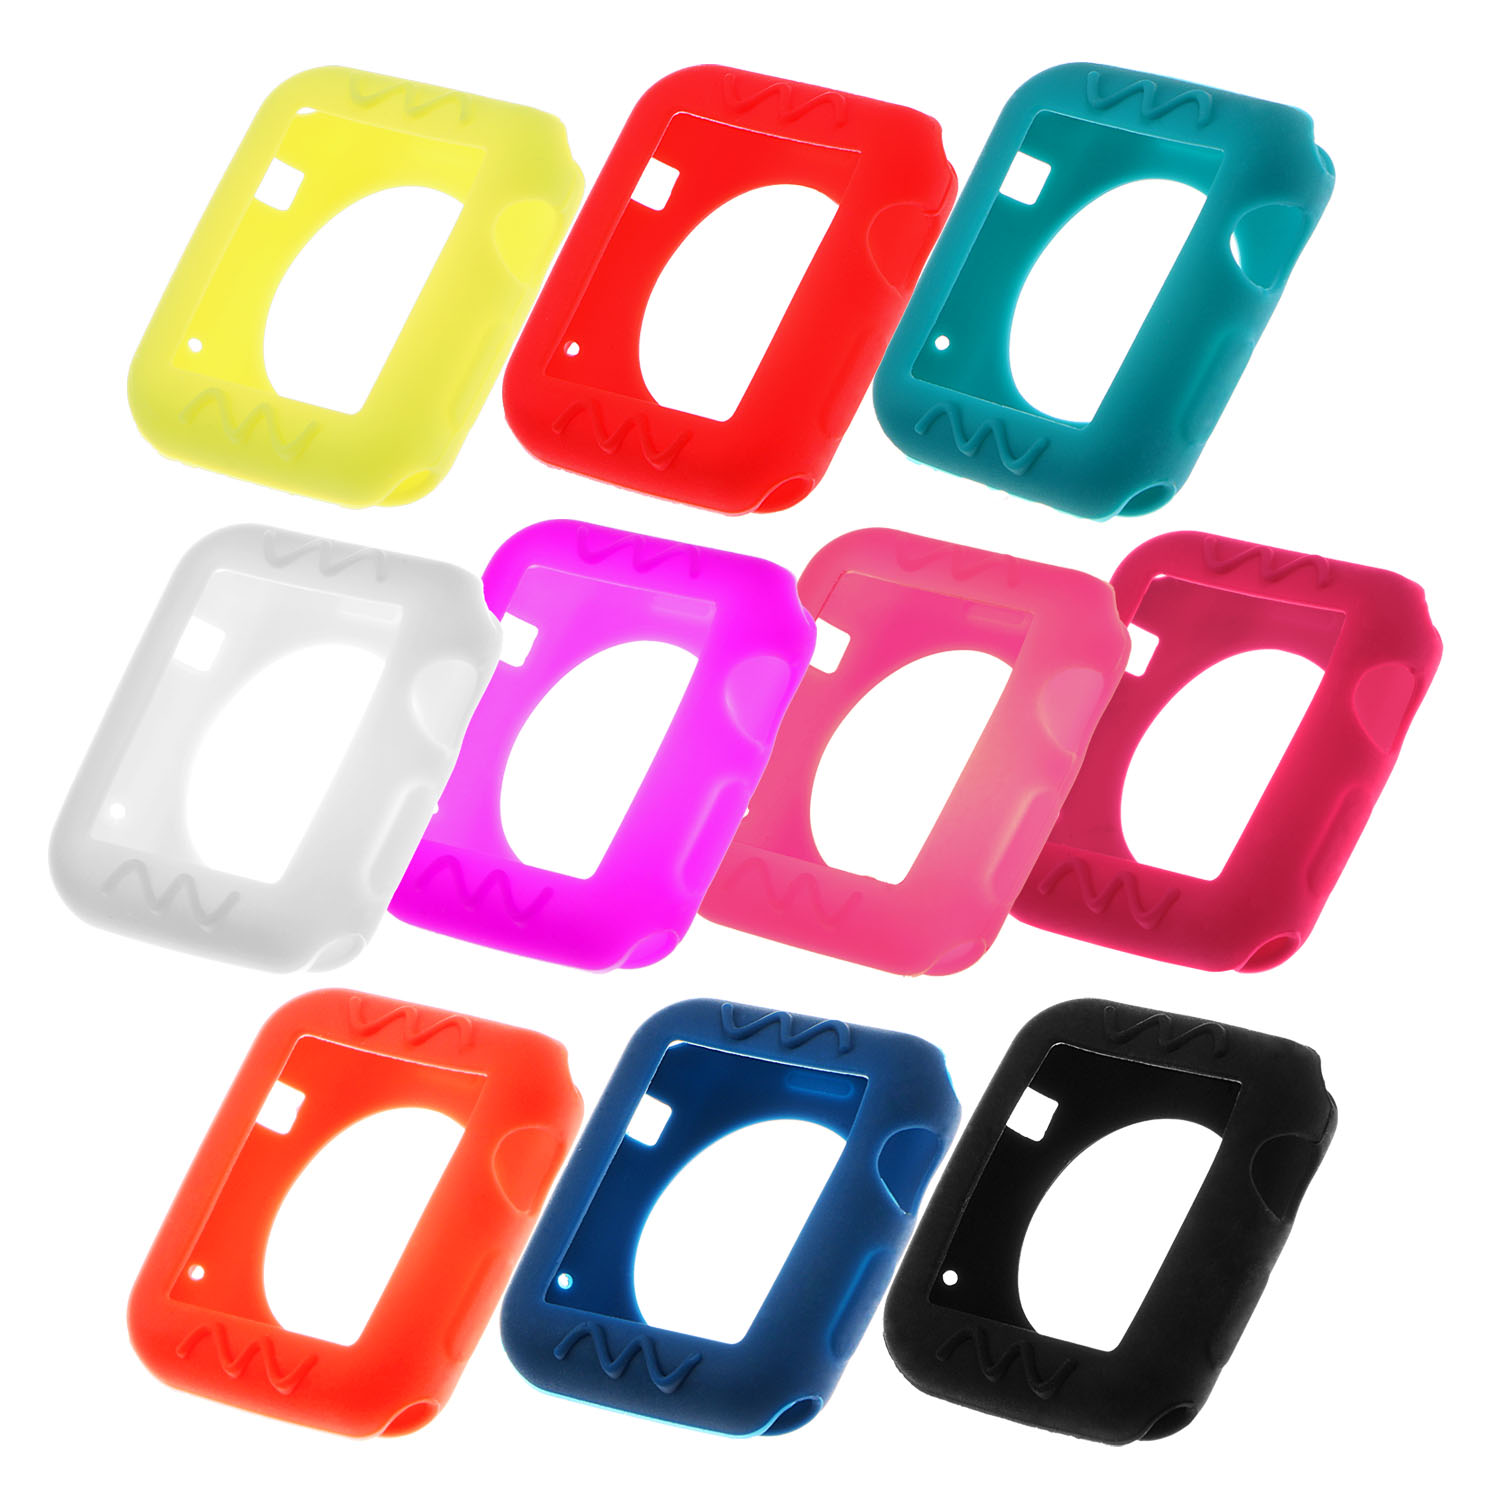 StrapsCo Silicone Rubber Protective Case Cover for 38mm 42mm Apple Watch Series 1/2/3 - image 1 of 3